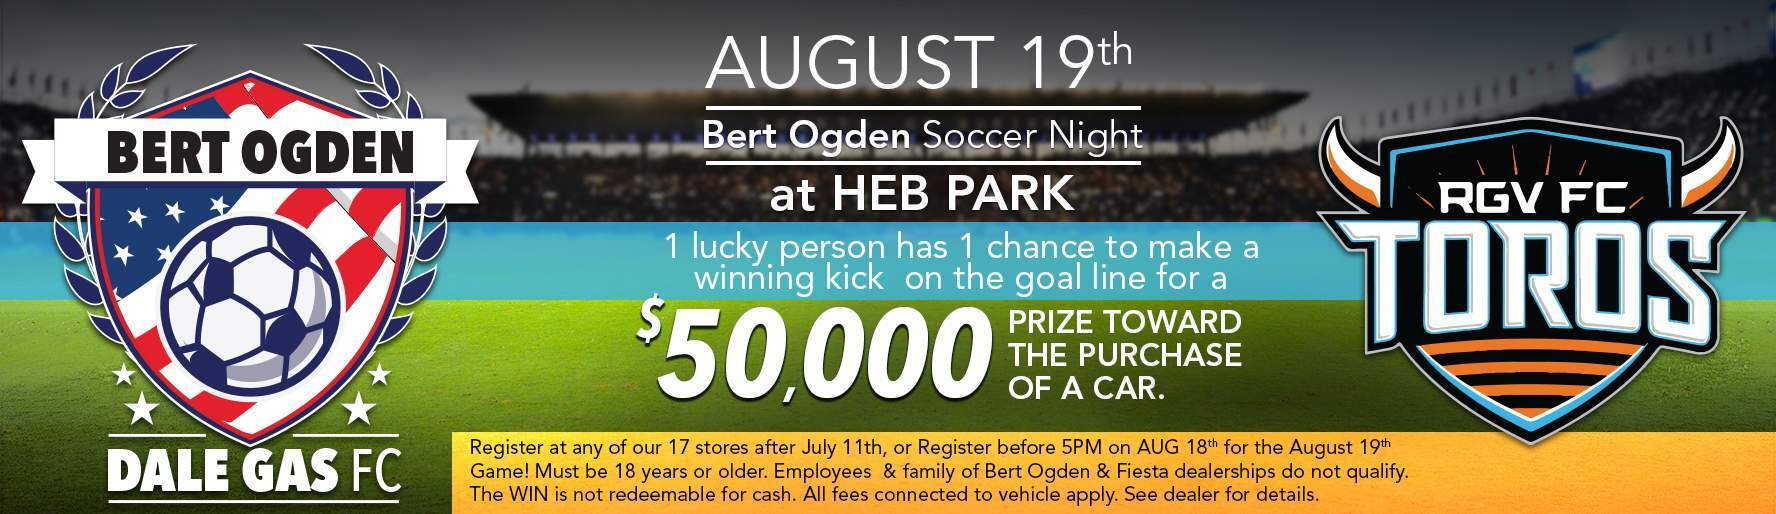 Bert Ogden Soccer Night